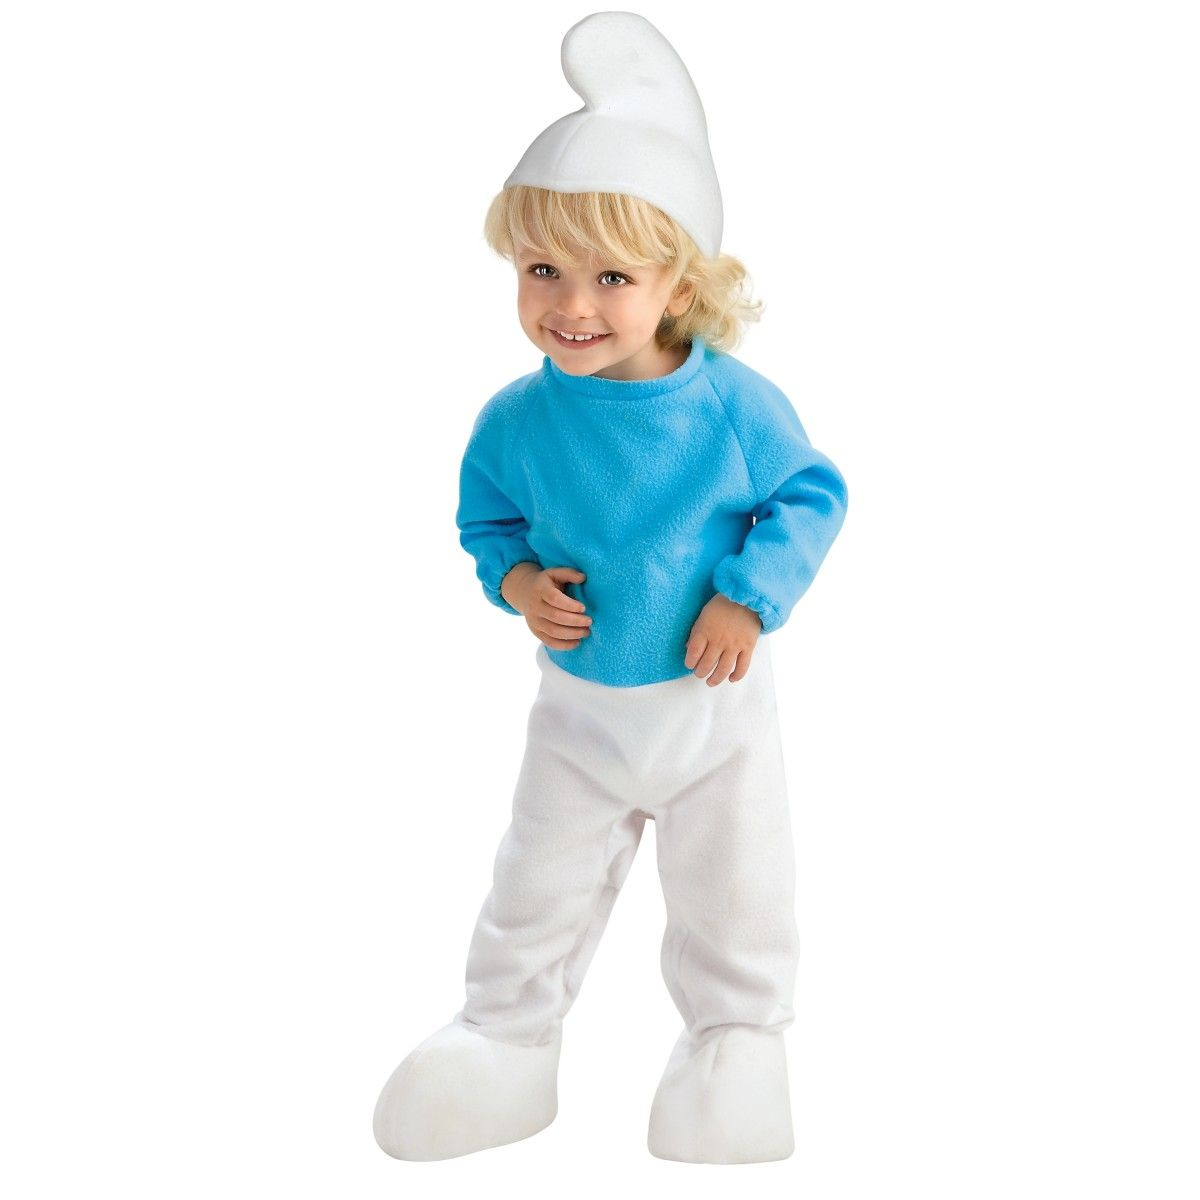 Image detail for -Get Smurfs Costumes This Halloween